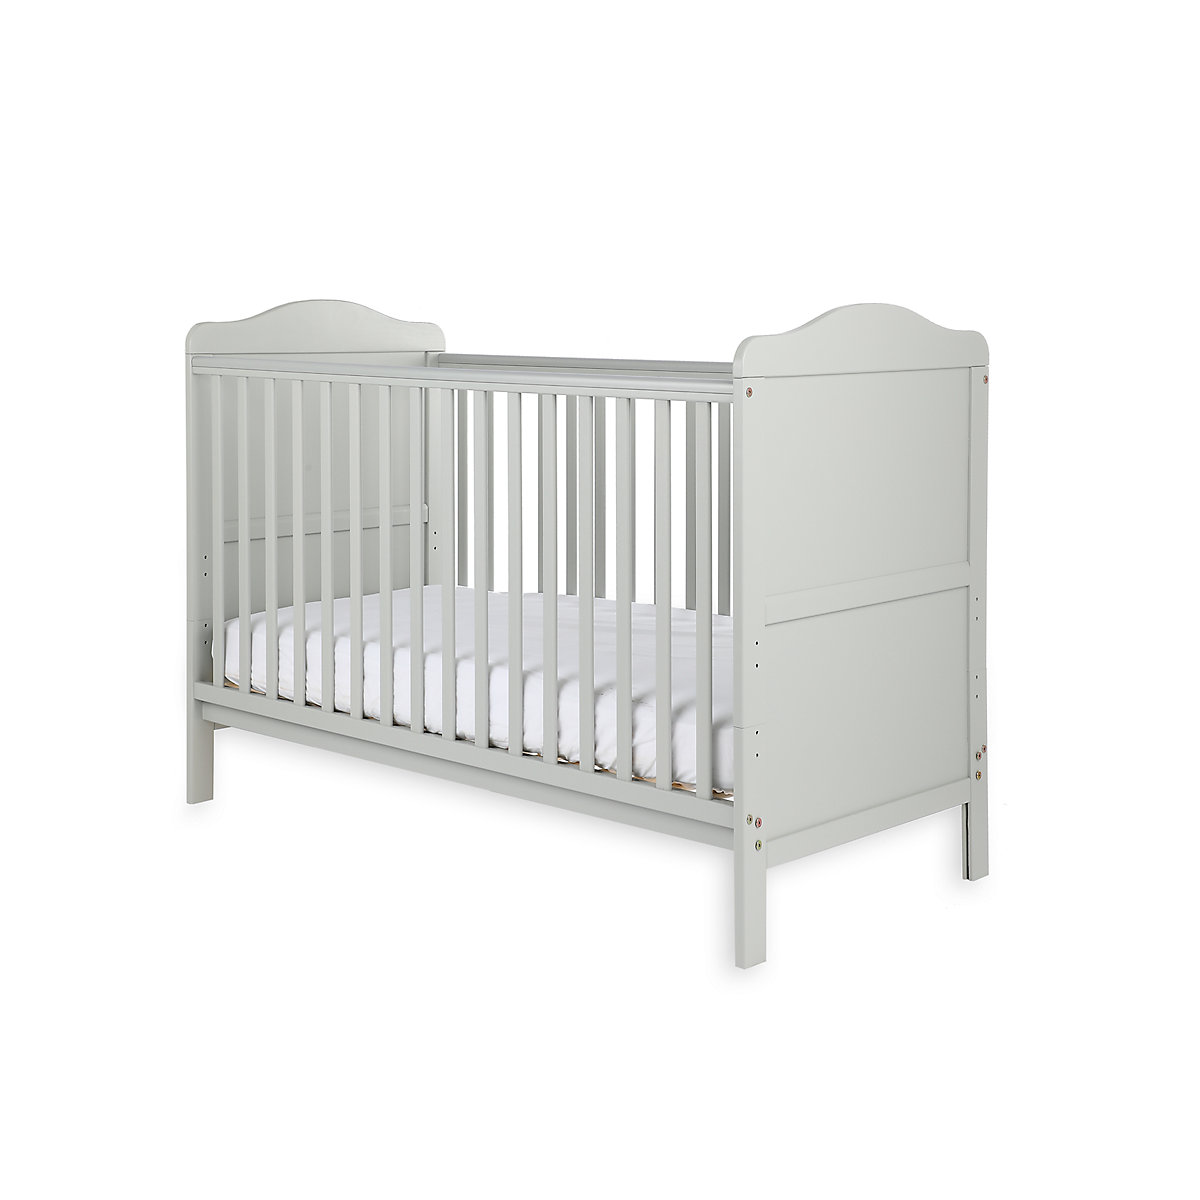 Little Acorns Winchester Cot Bed   Grey